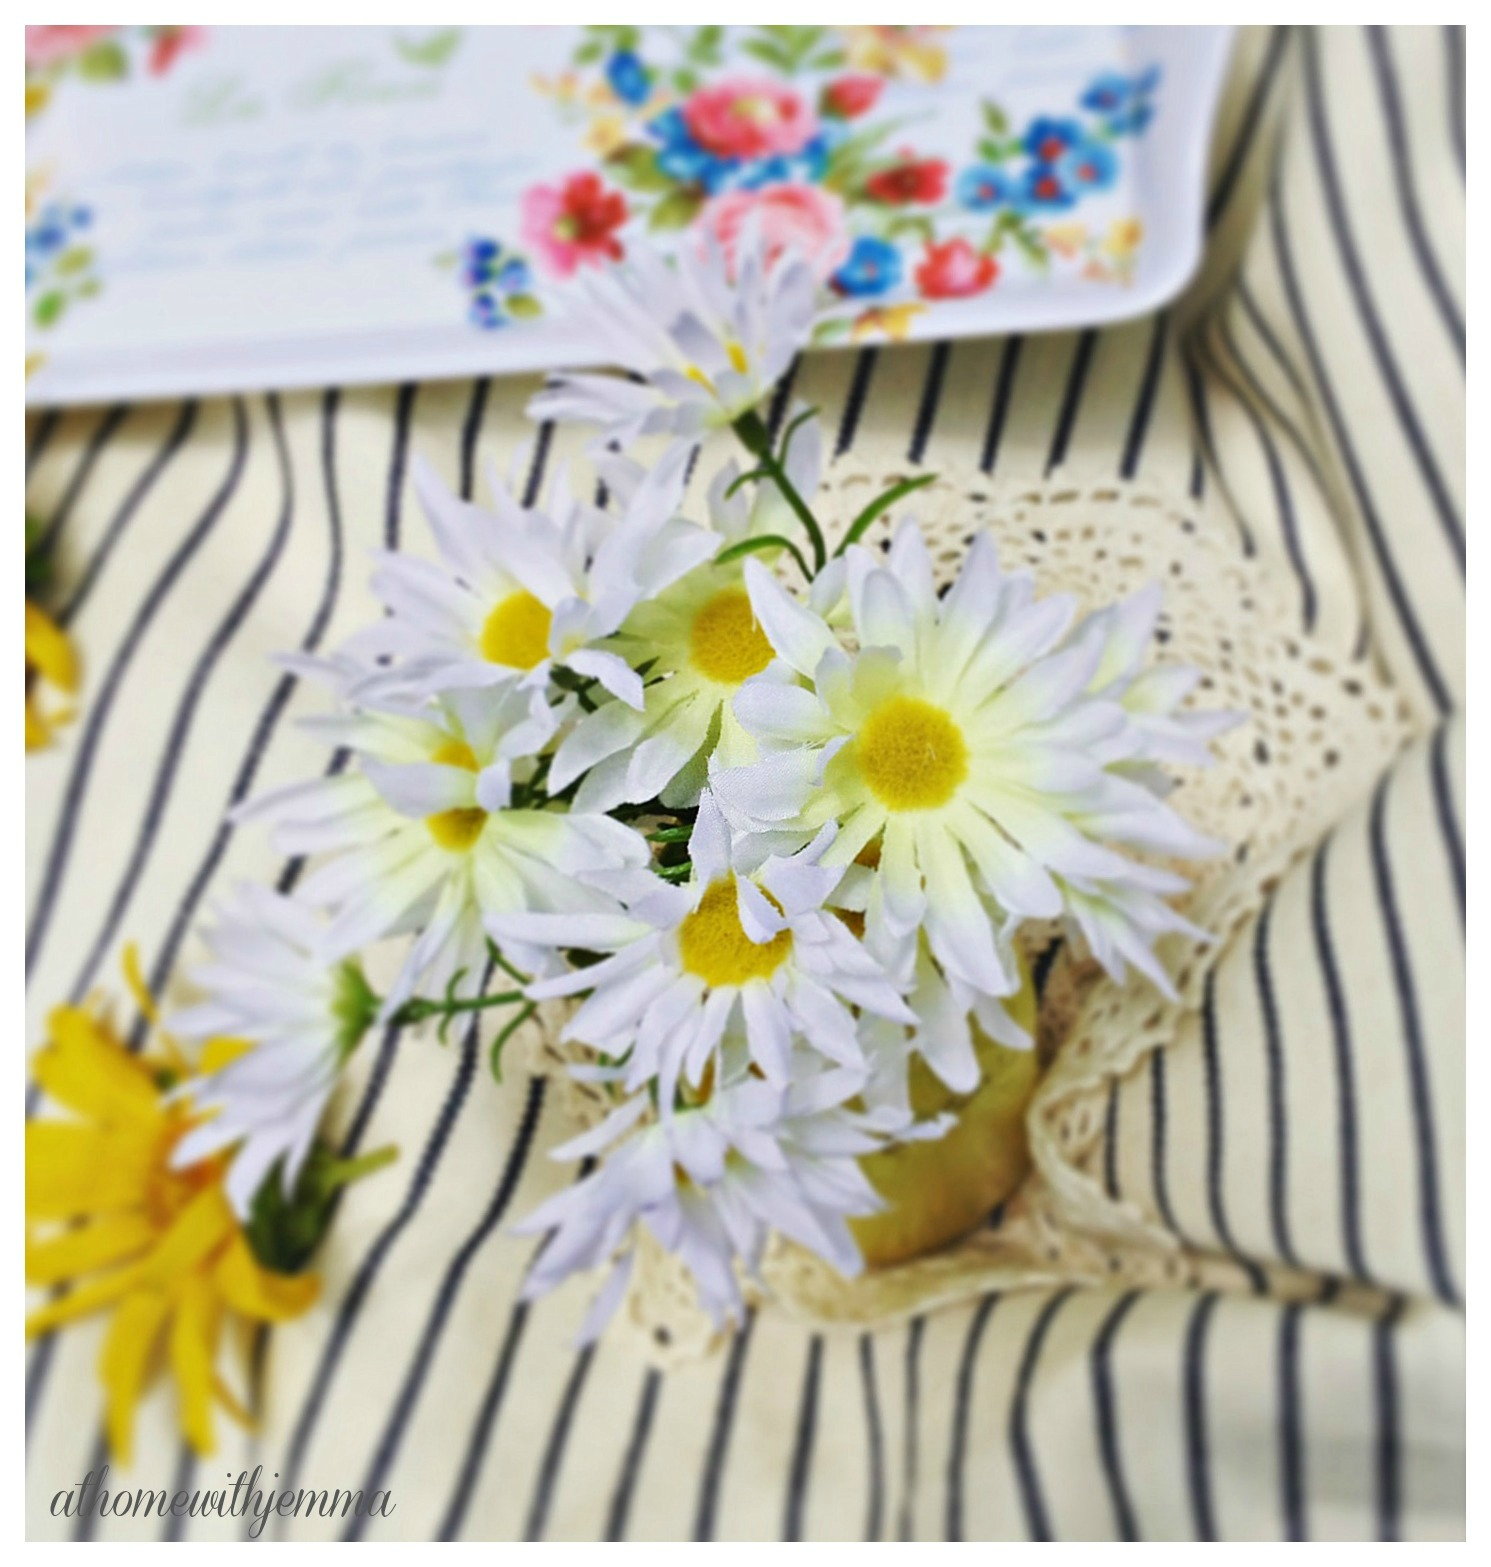 Stripe table cloth, daises, white and yellow daisy, english serving dish